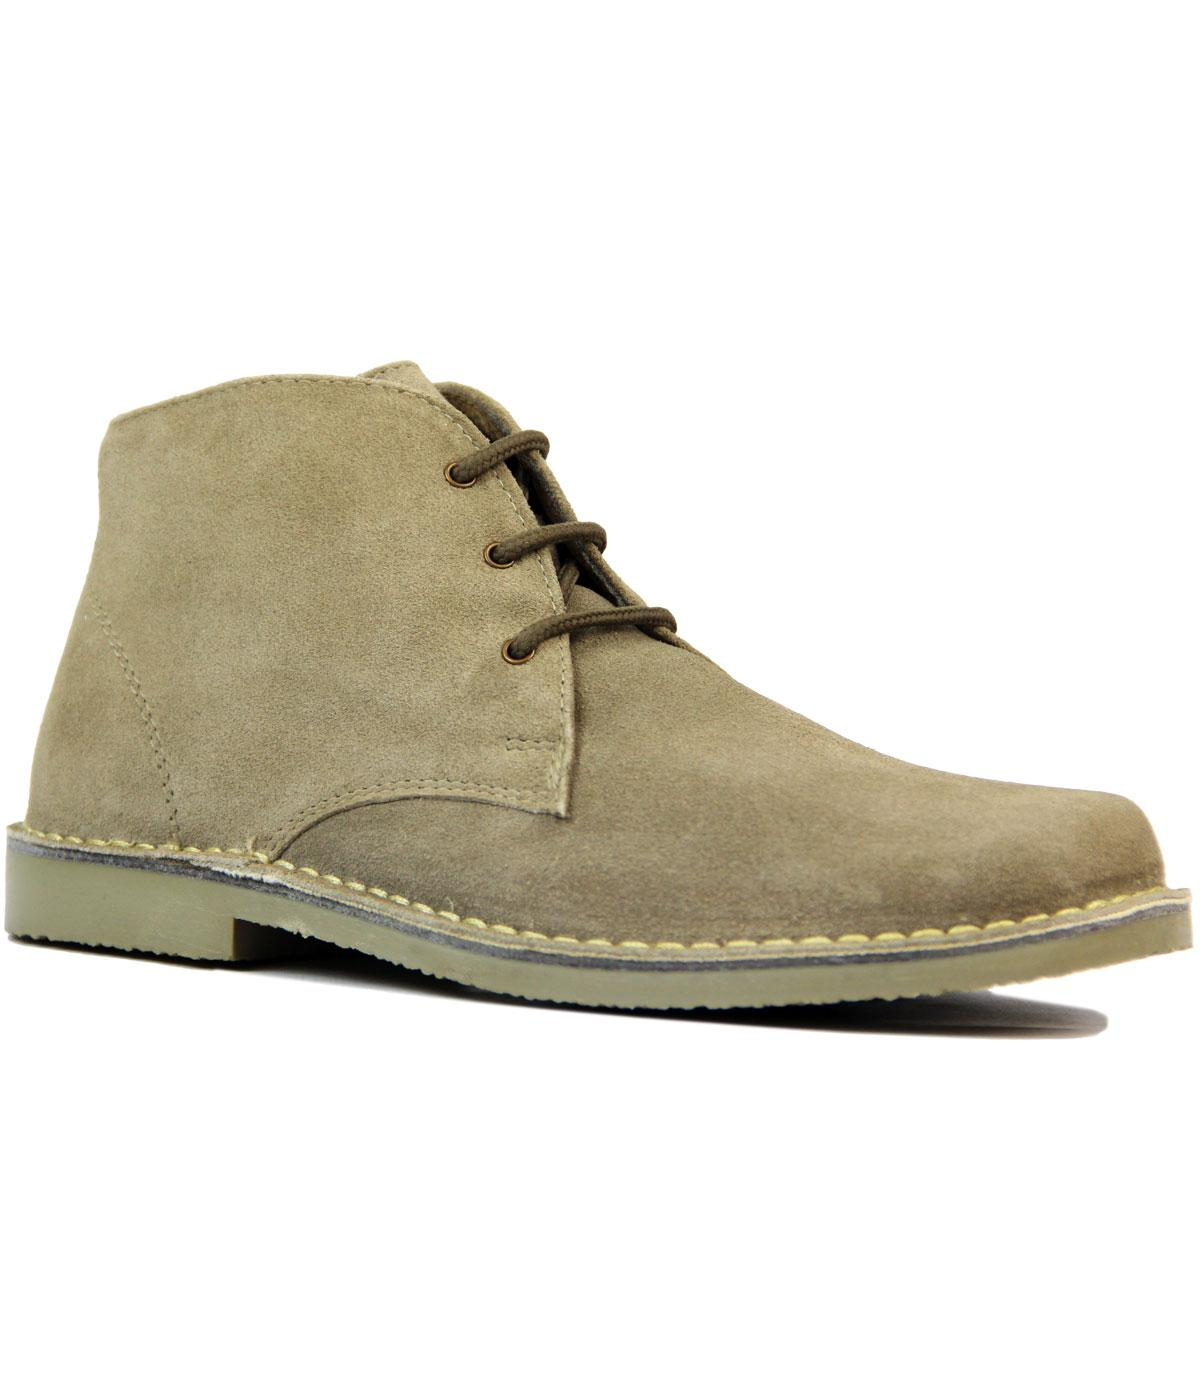 Detour - Men's Sixties Mod Desert Boots in Sand